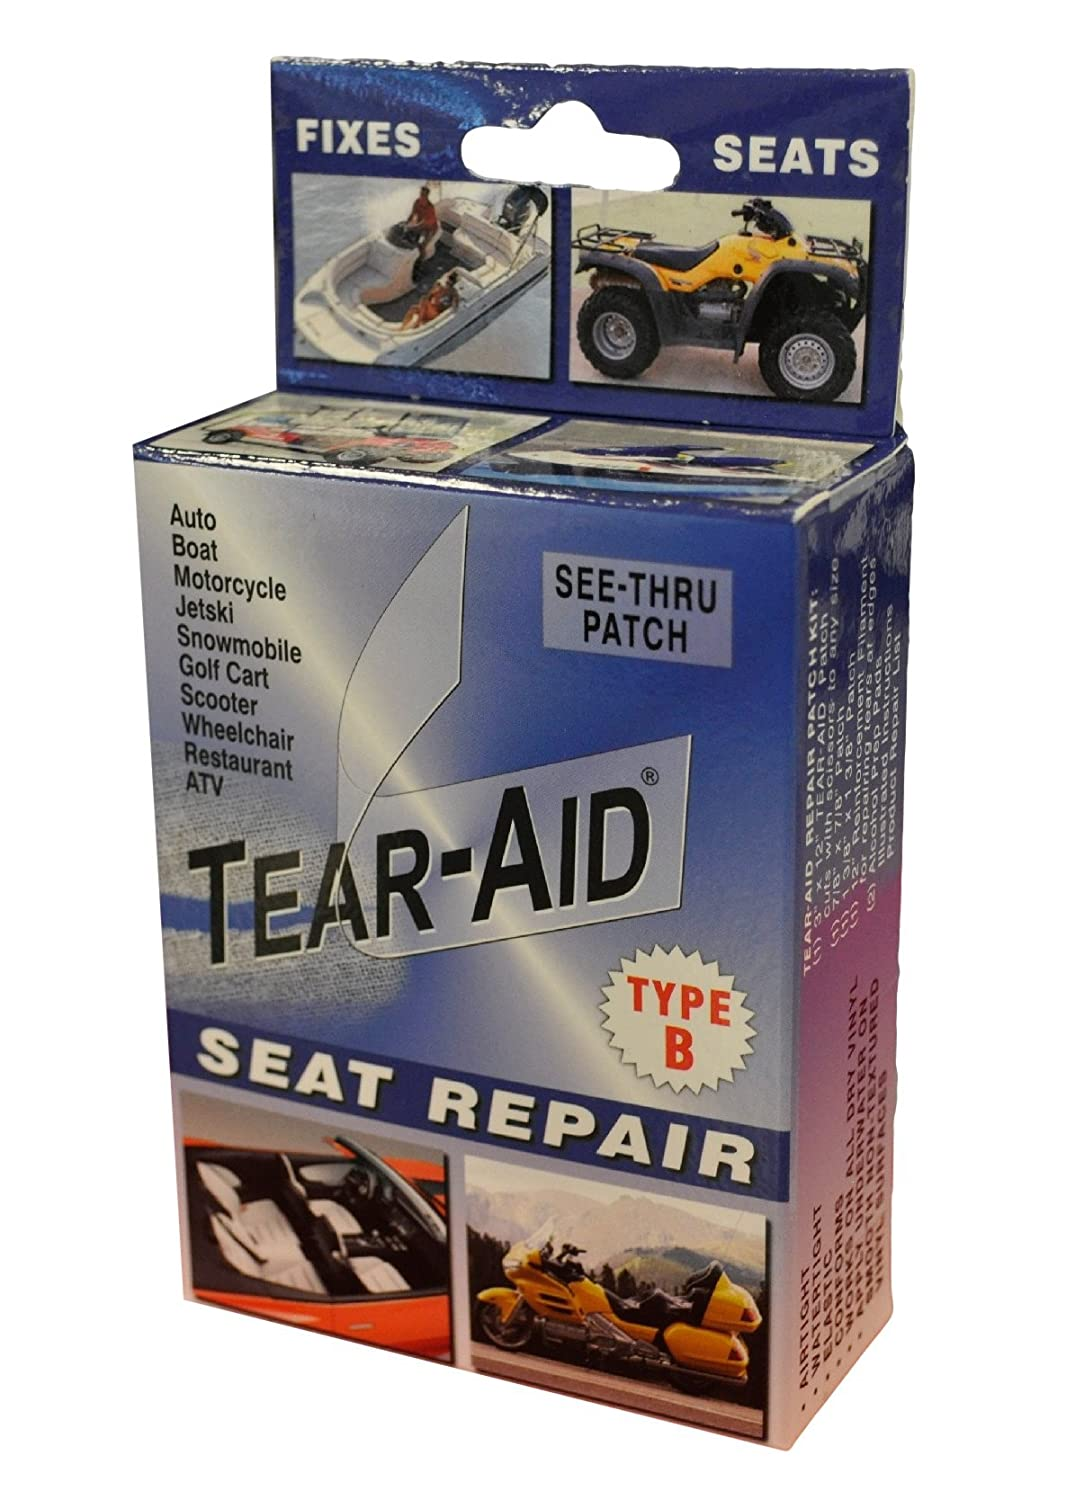 Amazoncom TearAid Repair Type B Vinyl Seat Repair Kit Sports - Vinyl for motorcycle seat